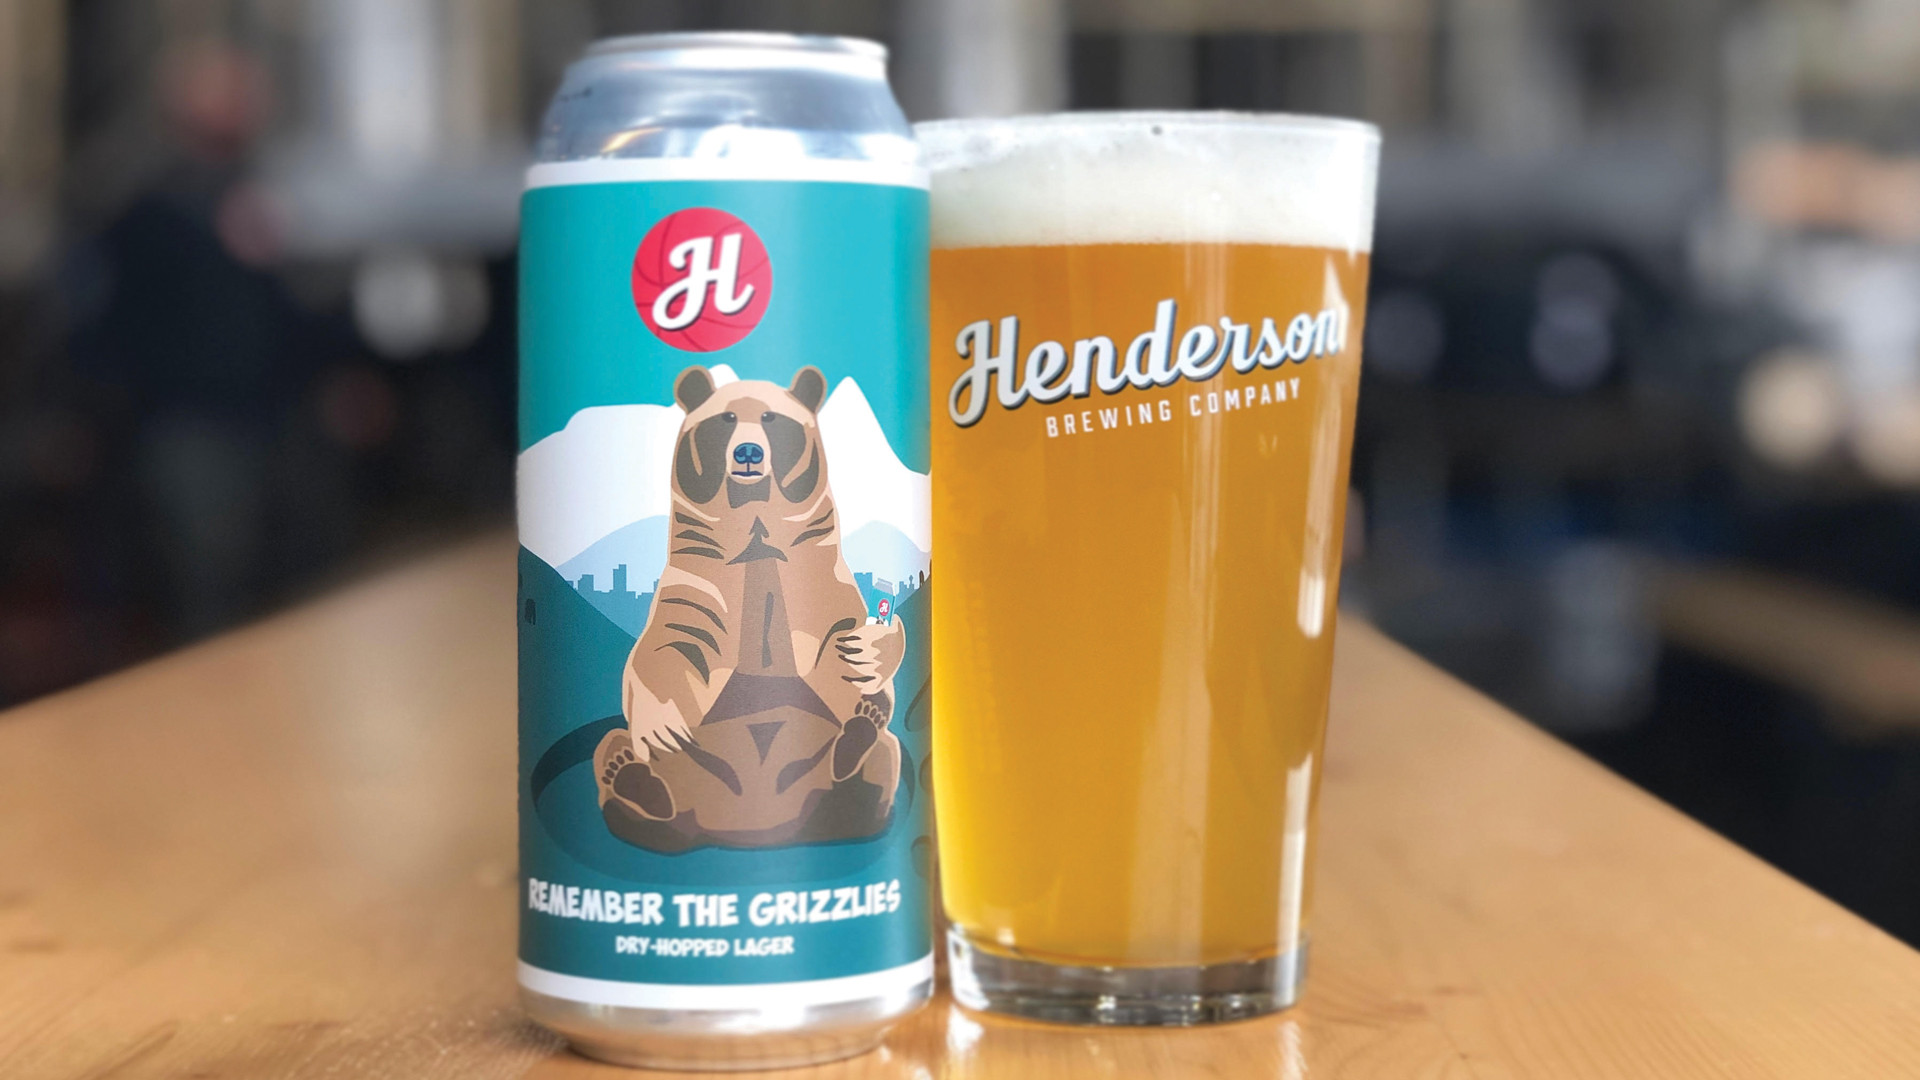 Henderson Brewing | Ides of November 2019: Remember the Grizzlies